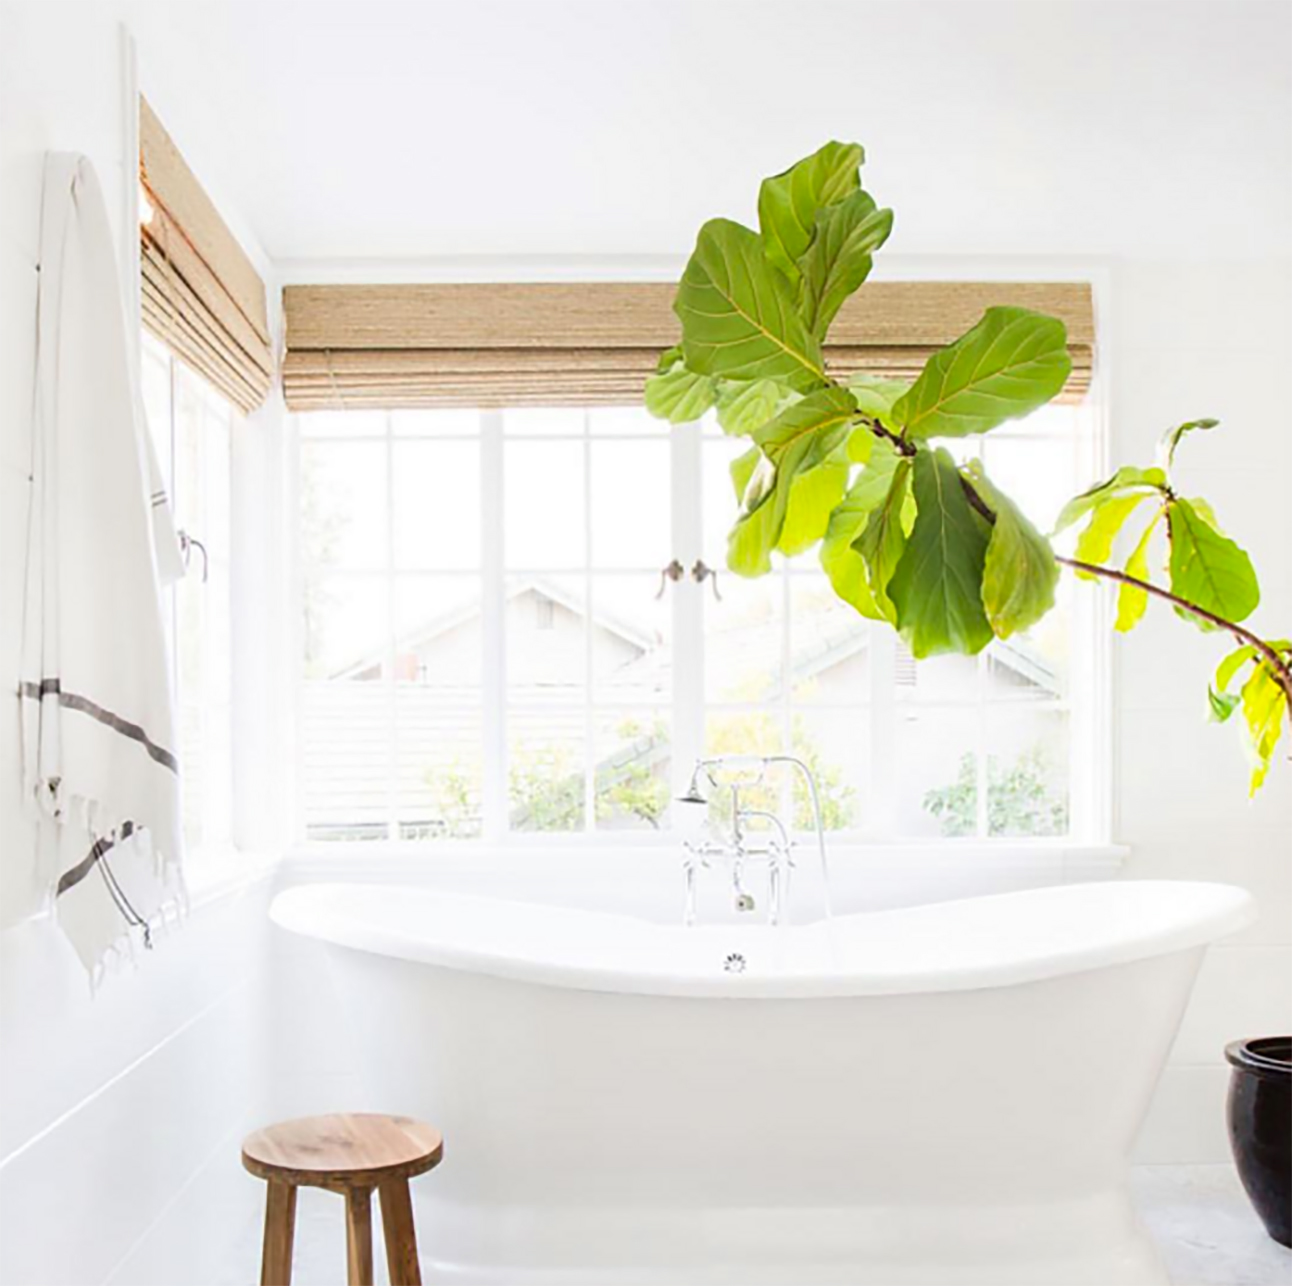 9 Refreshing Ways To Decorate With House Plants